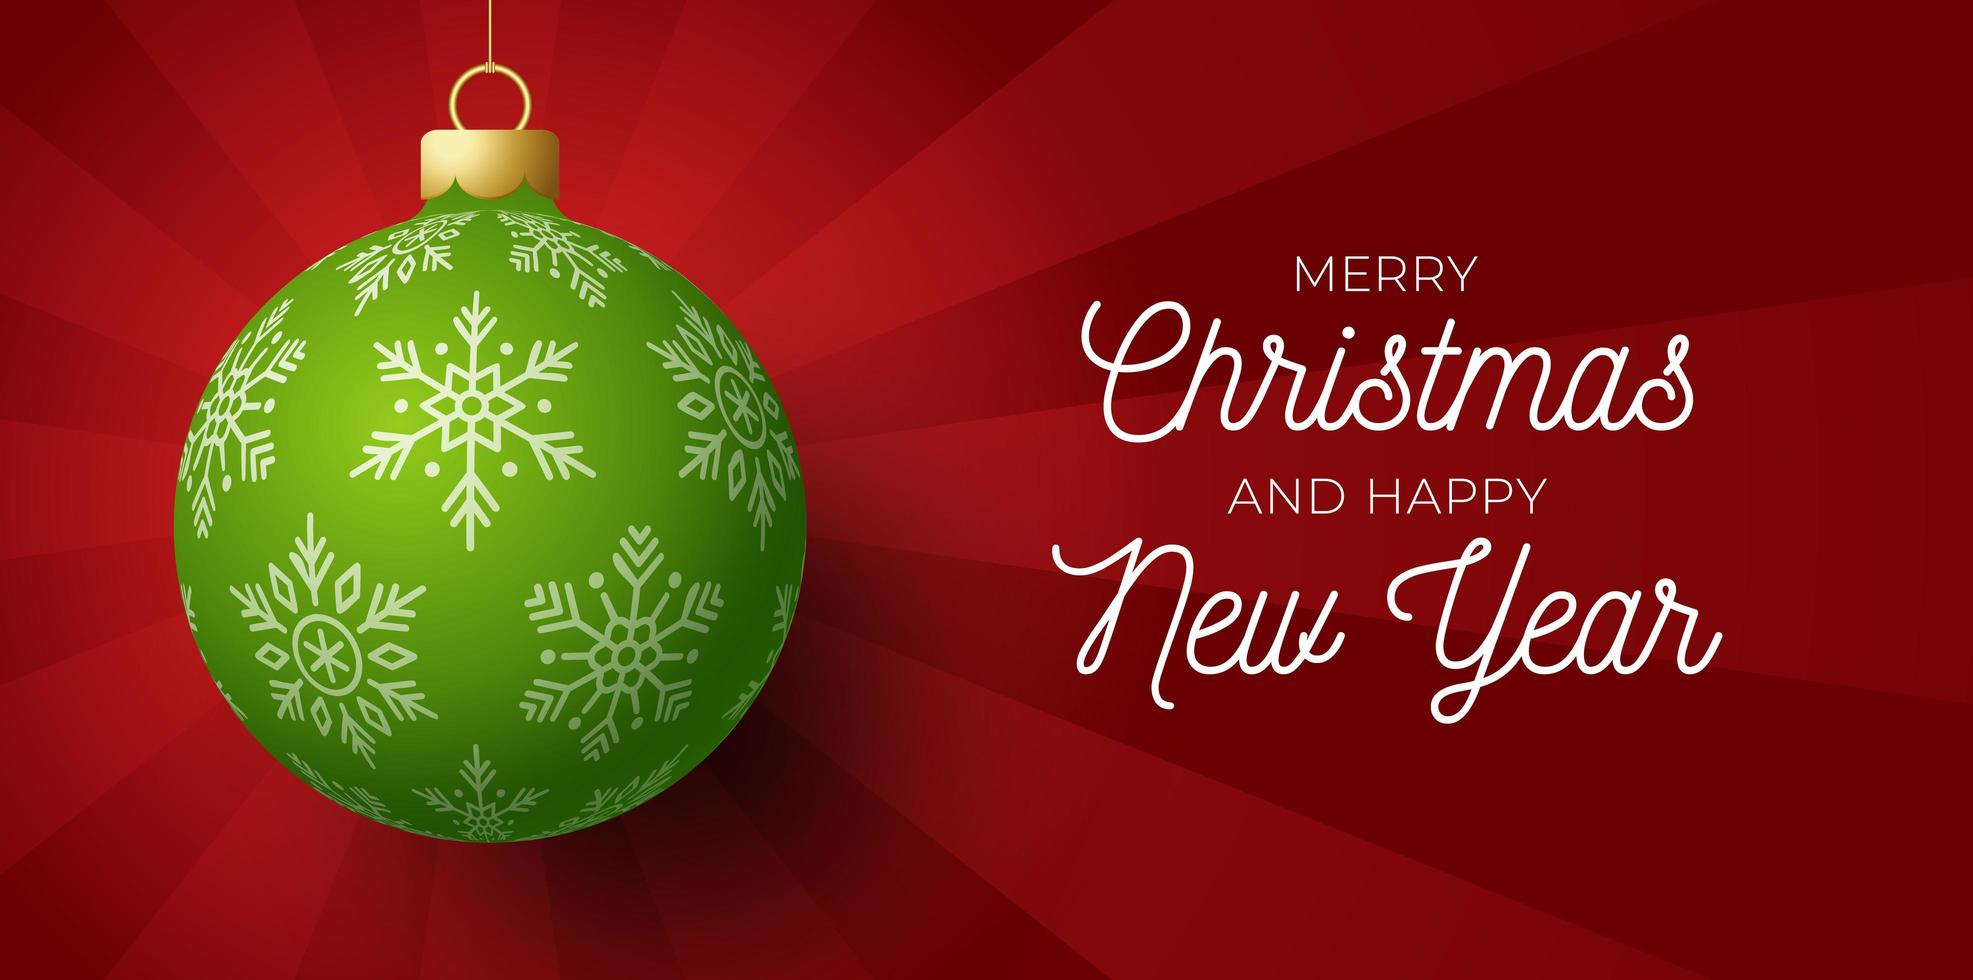 Merry Christmas and happy new year banner. Vector illustration card with green Christmas tree ball on luxury sunrise light background with modern lettering